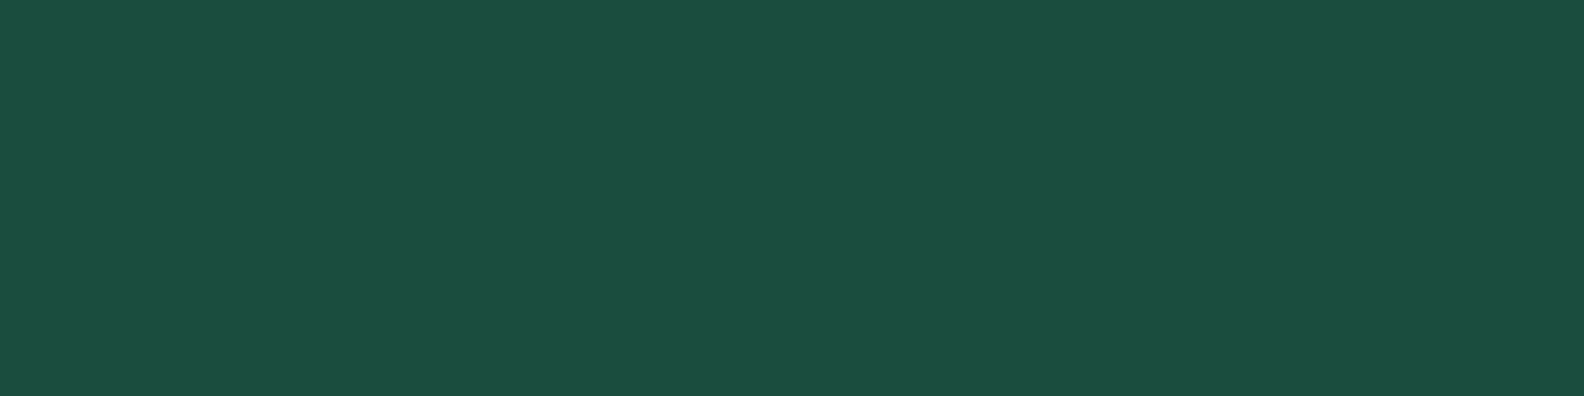 1584x396 English Green Solid Color Background